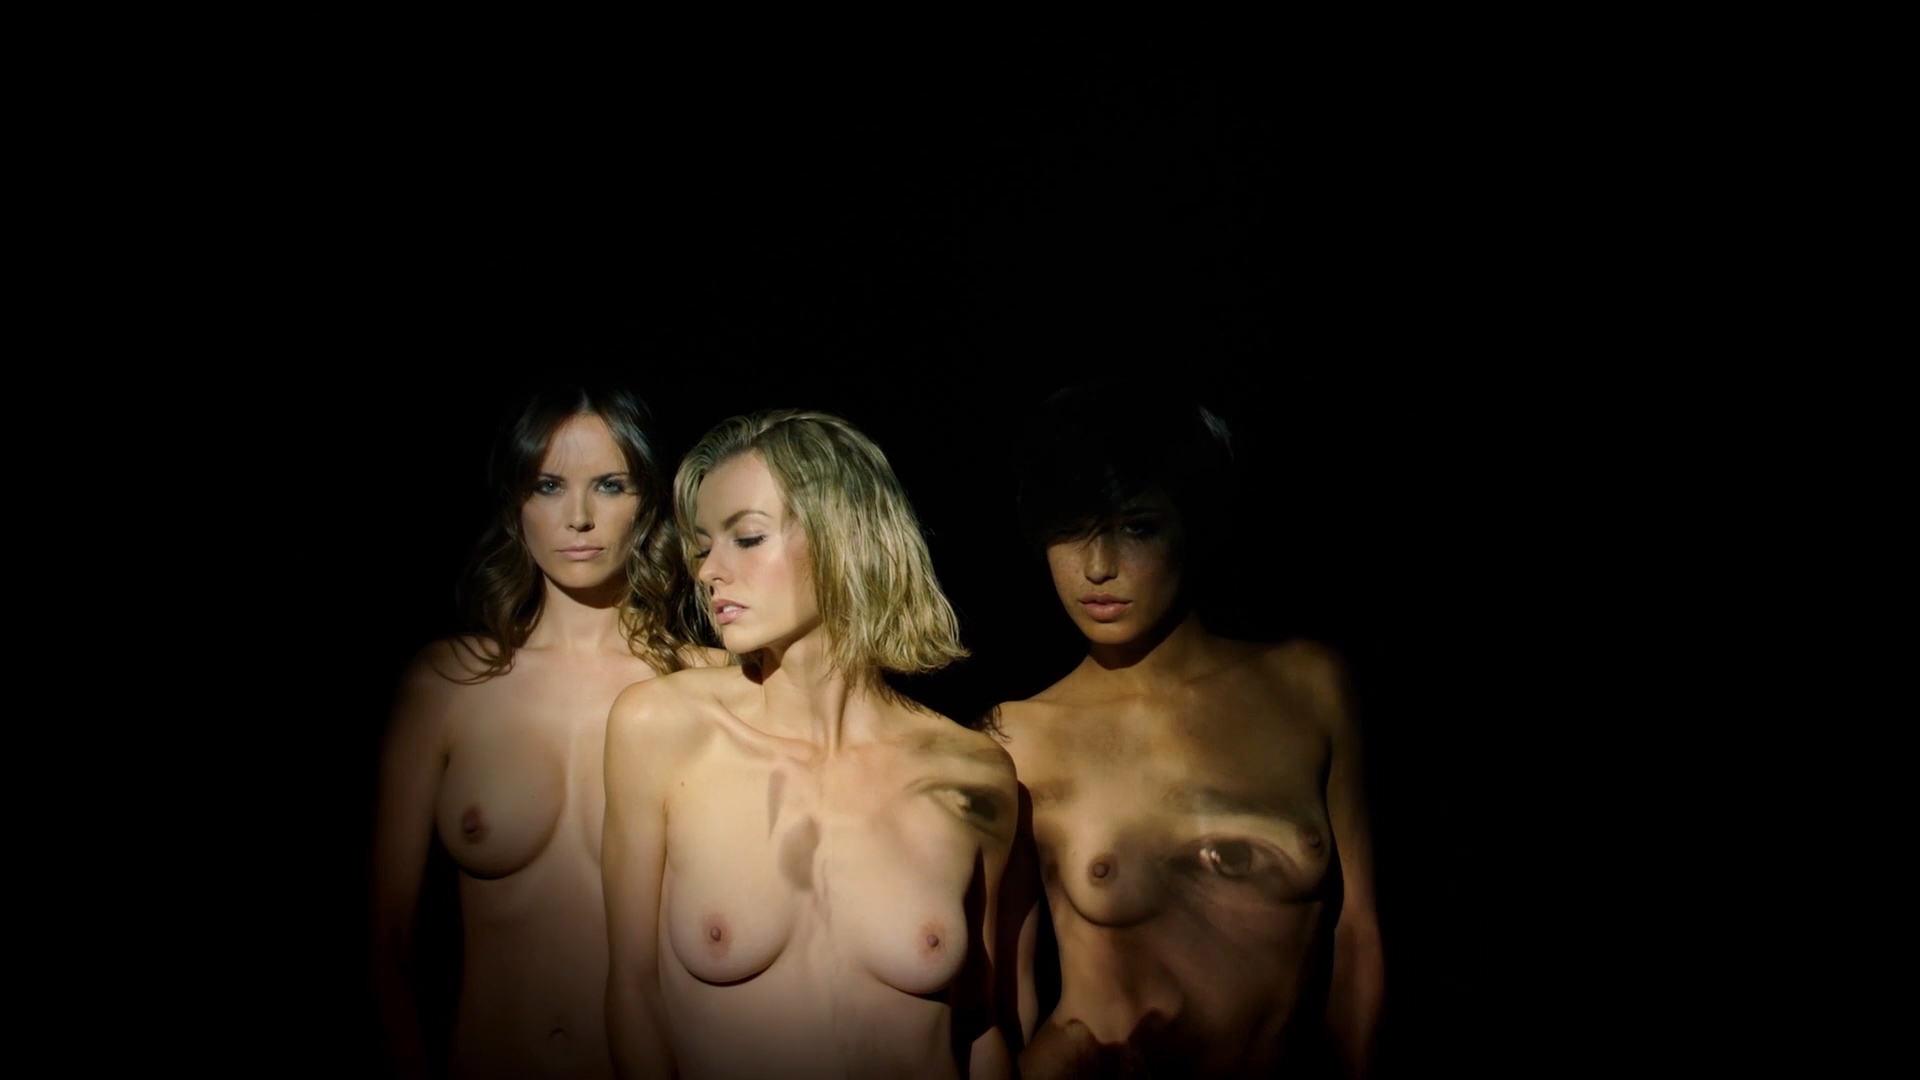 Felicia Porter nude topless and Laura Shields nude - Tunnel Vision (Explicit) - Justin Timberlake hd1080p (3)